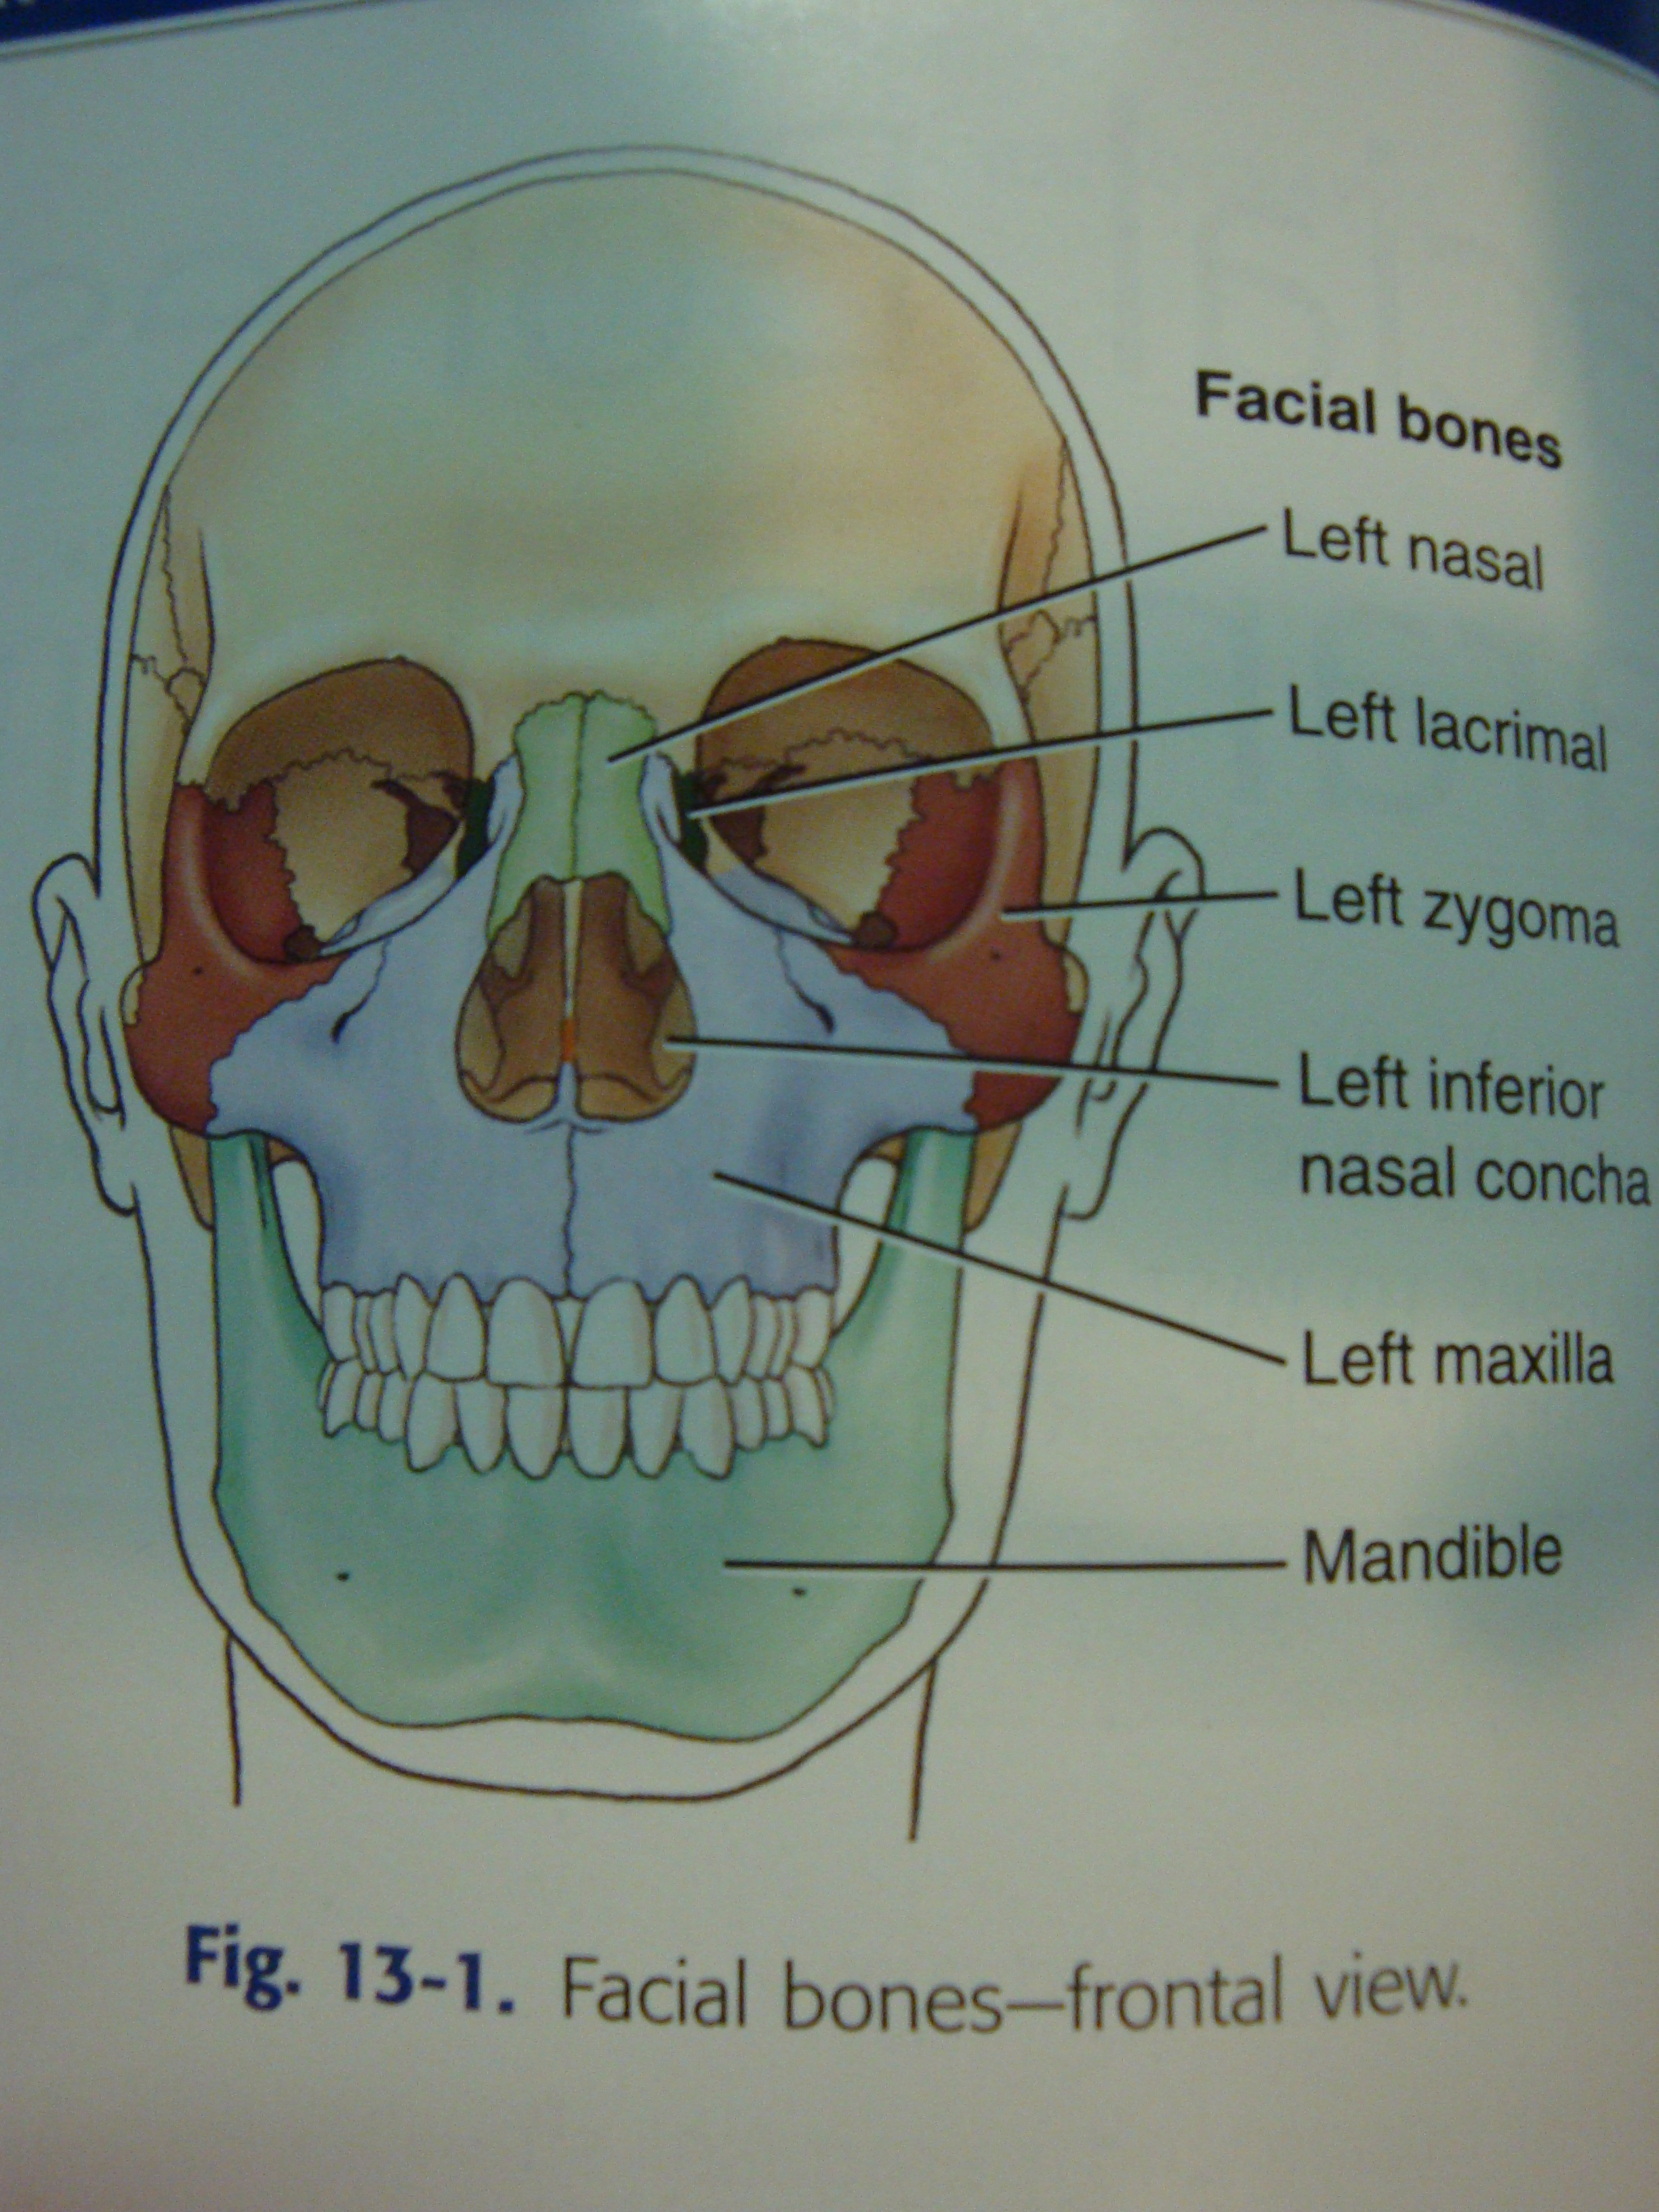 Facial Bones Anatomy